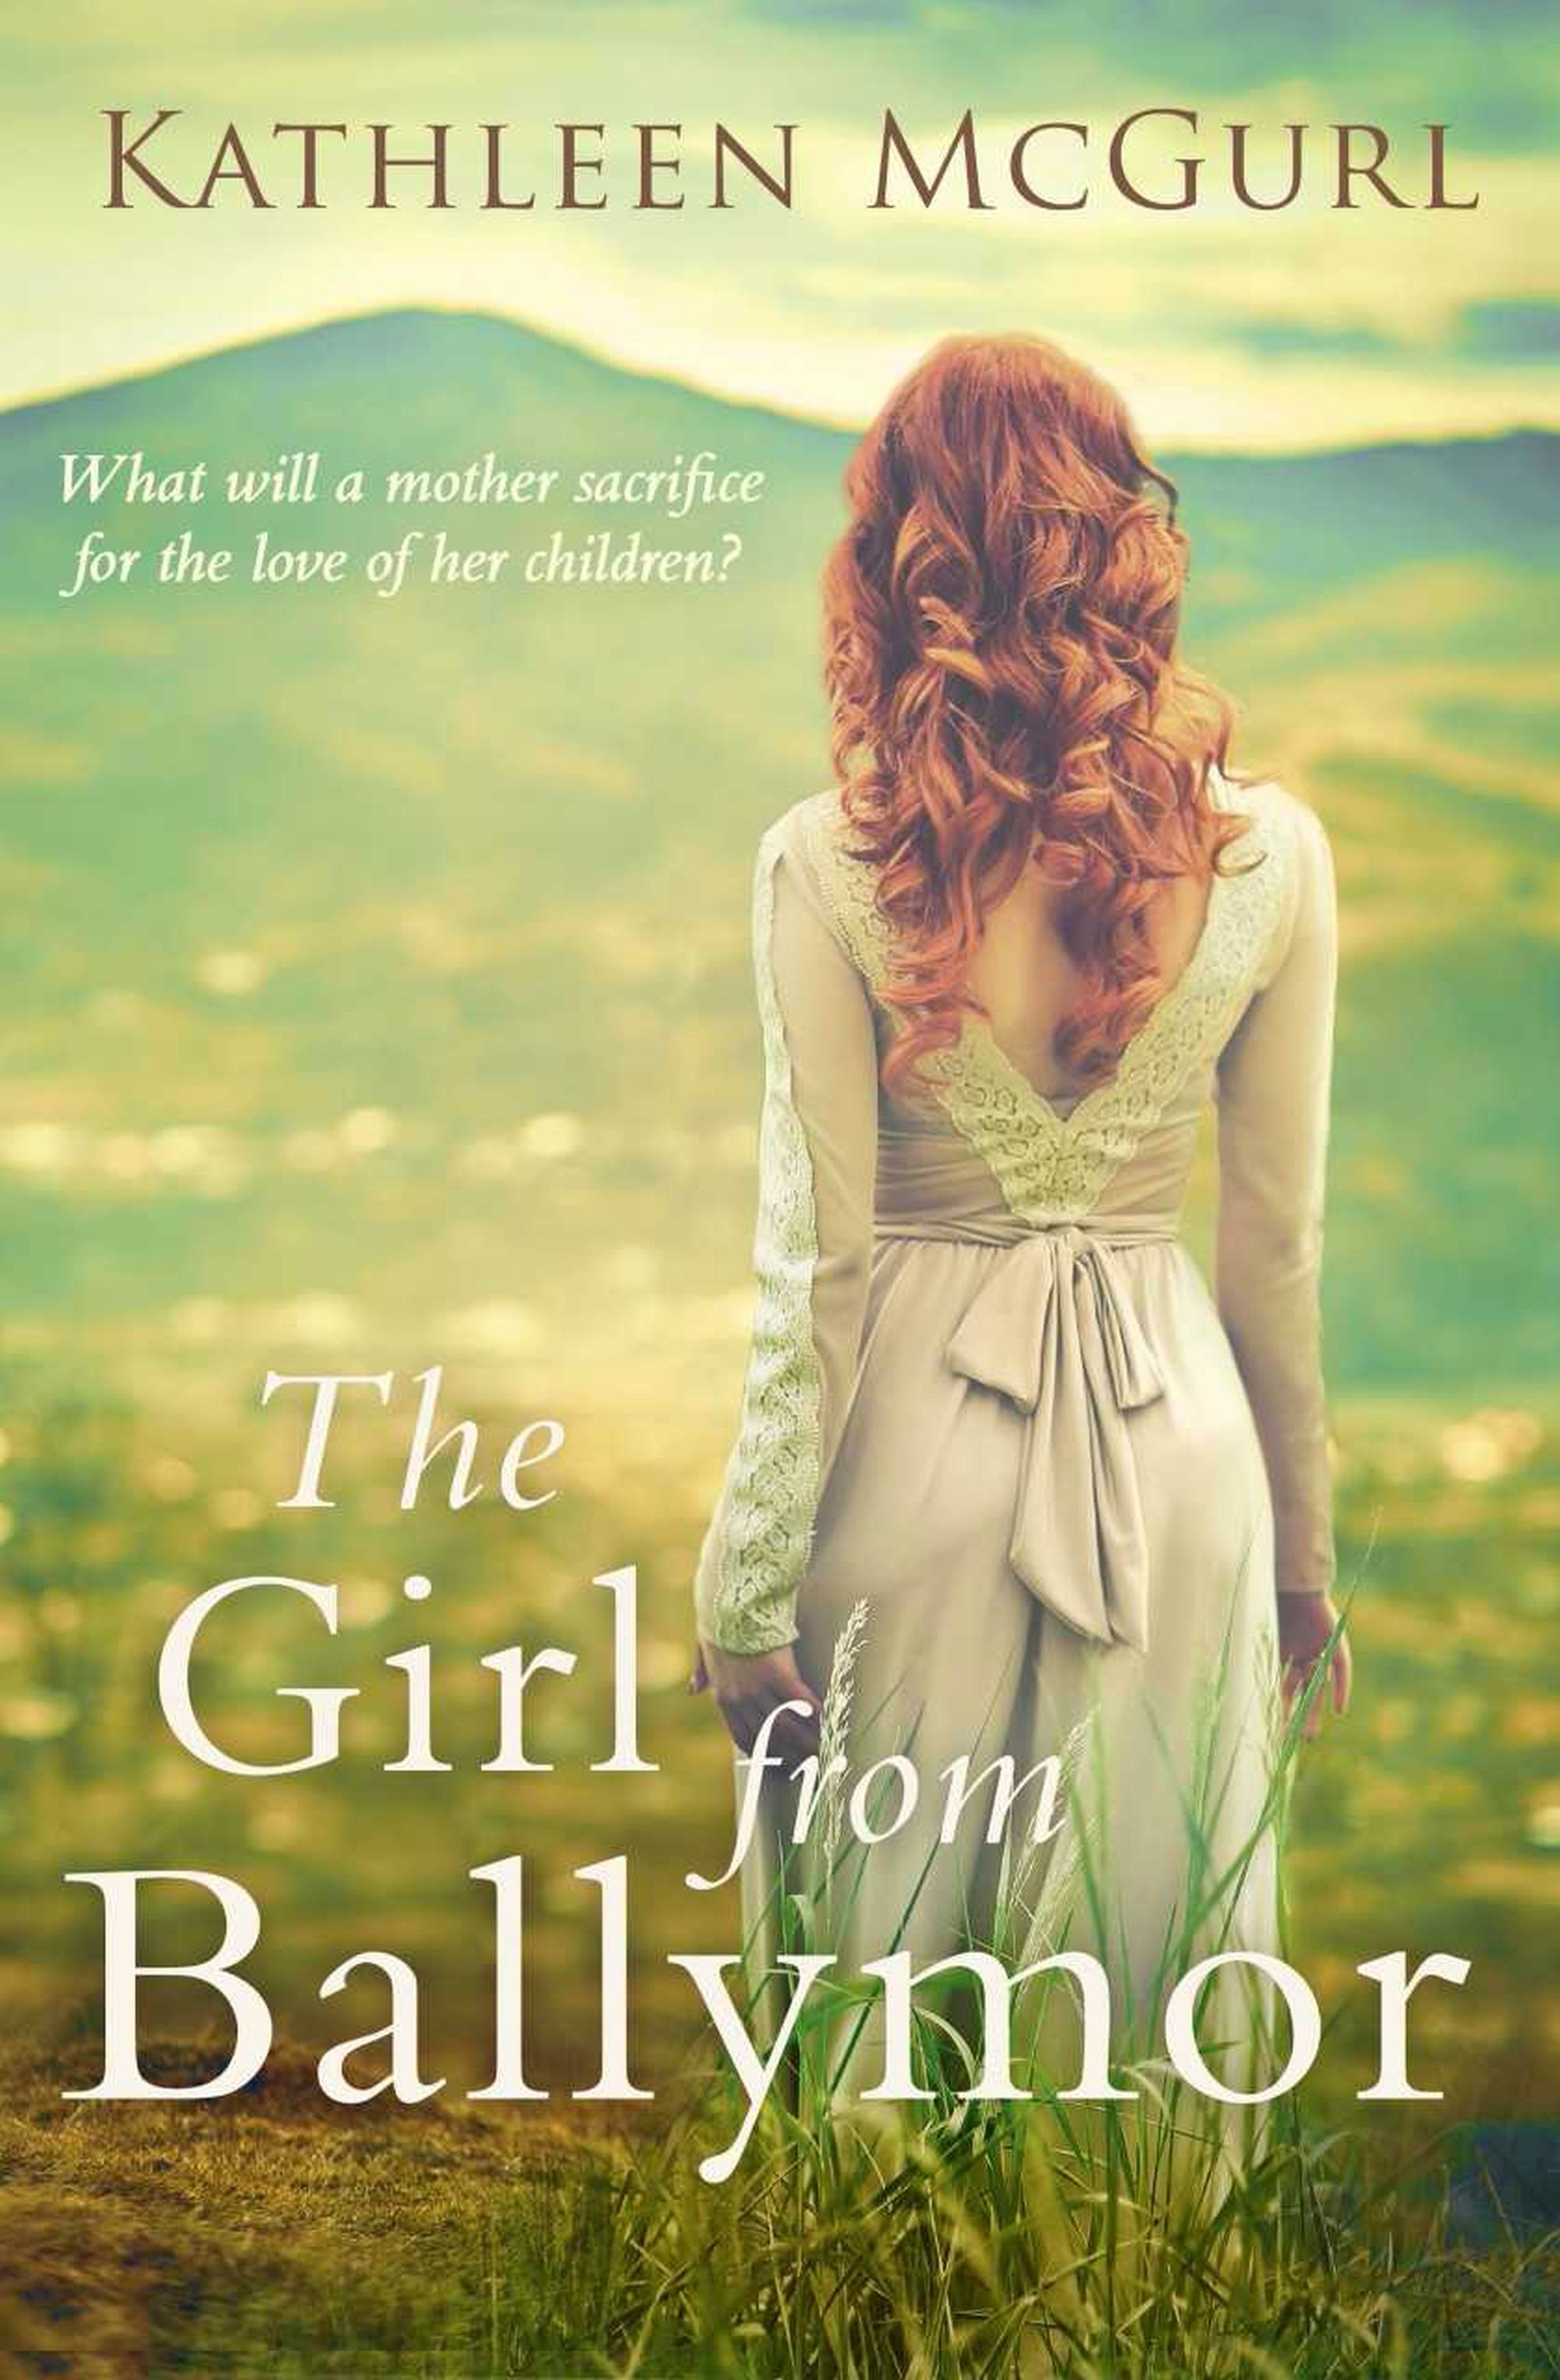 BOOK: The Girl from Ballymor by Kathleen McGurl